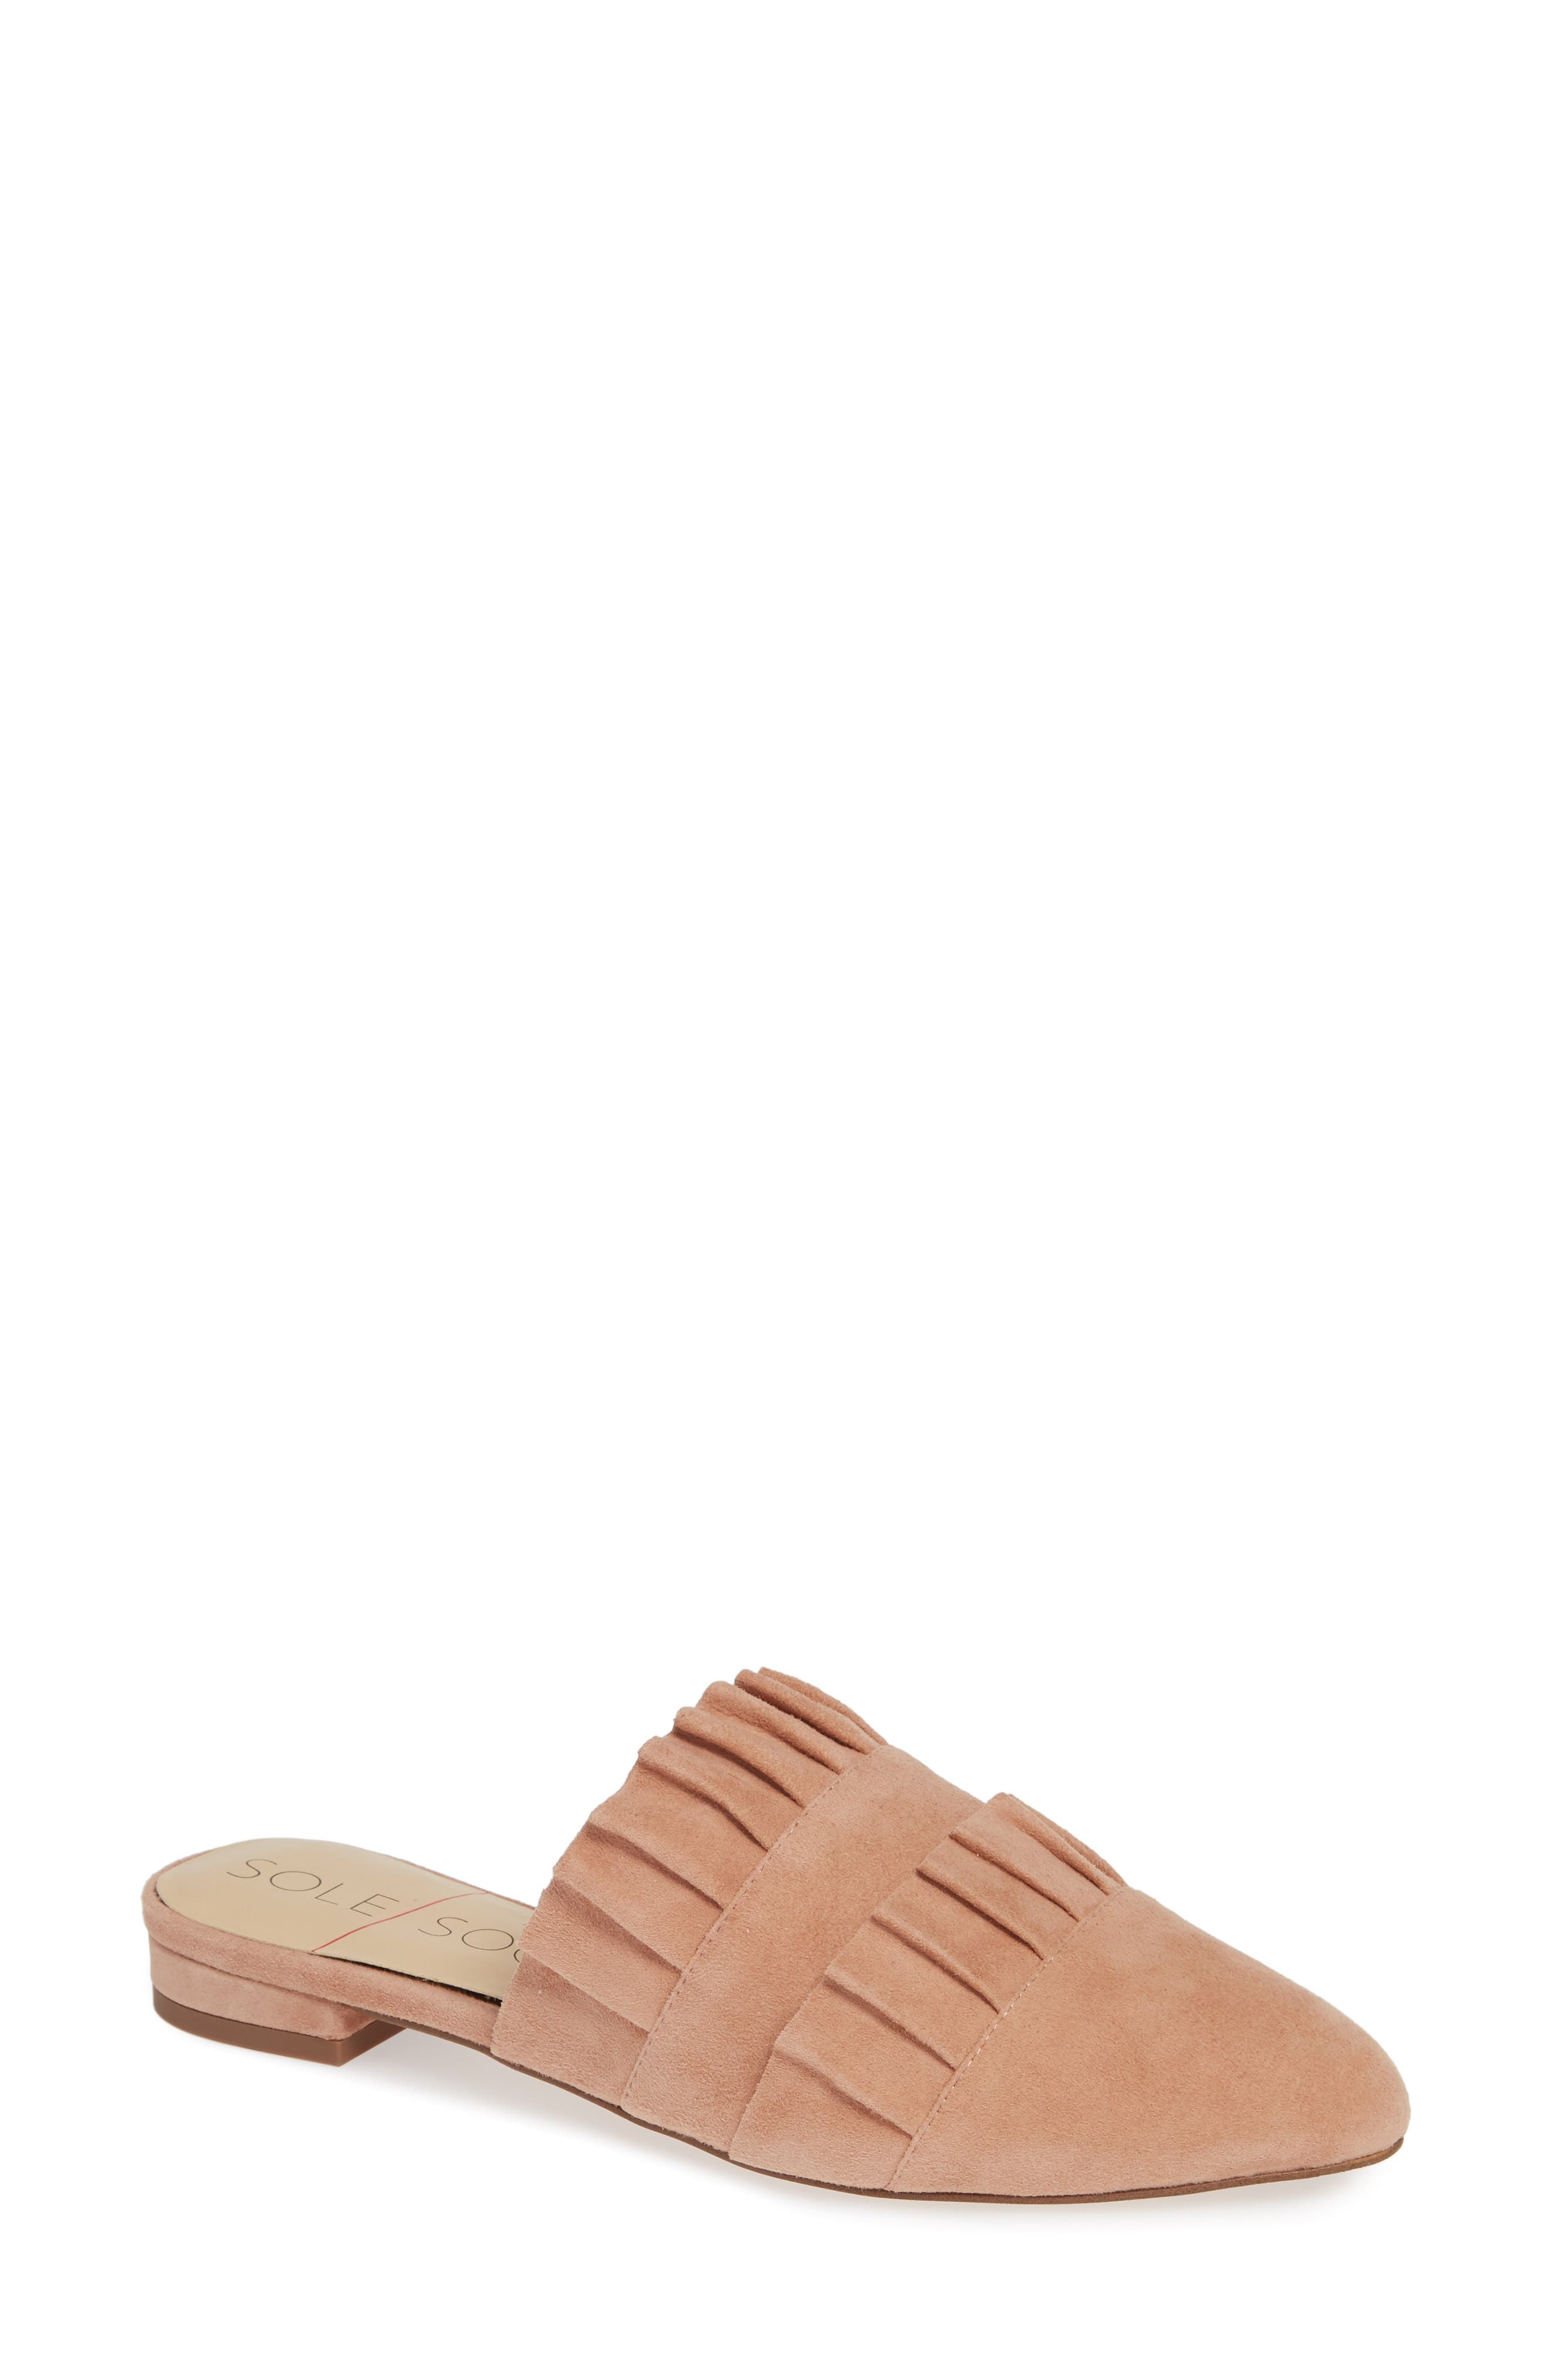 Pollina Mule,                             Main thumbnail 1, color,                             AGED ROSE SUEDE